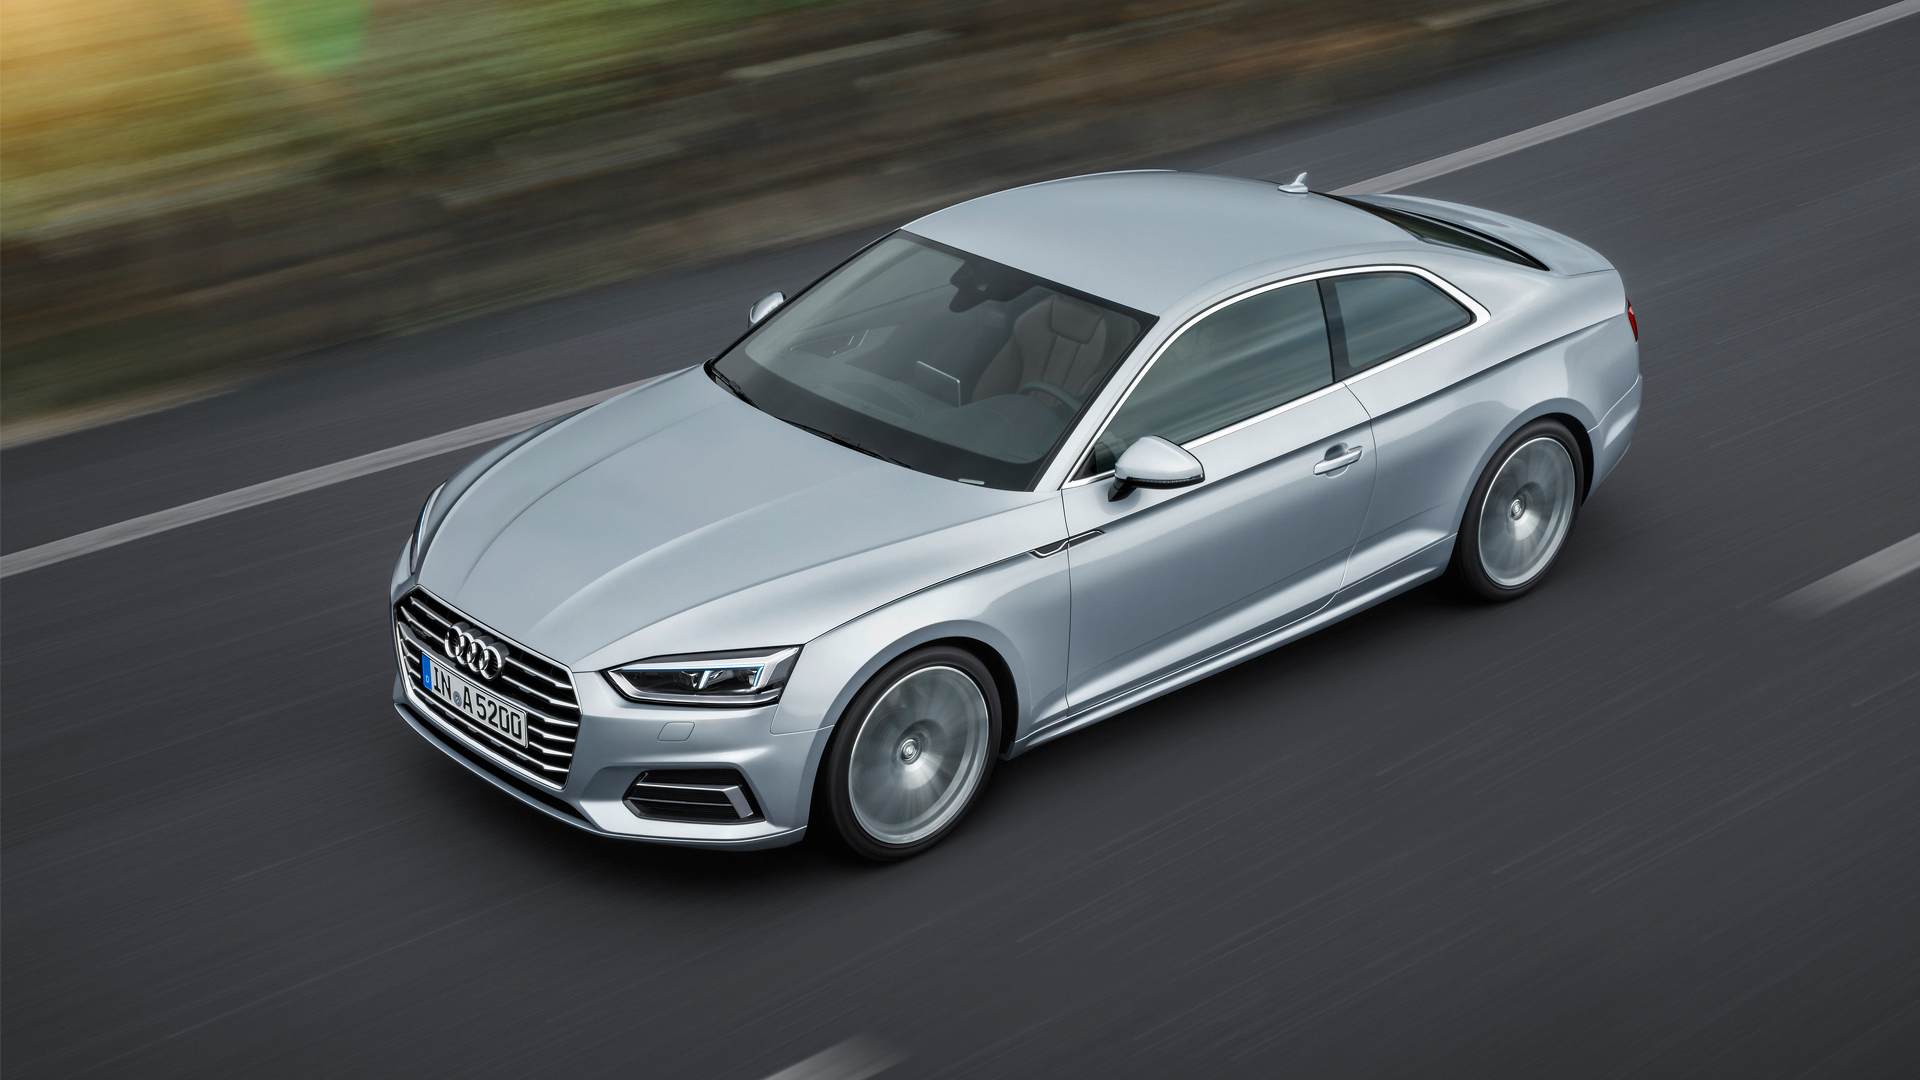 VW petrol particulate filter reduces soot up to 90 percent, launches in 2017